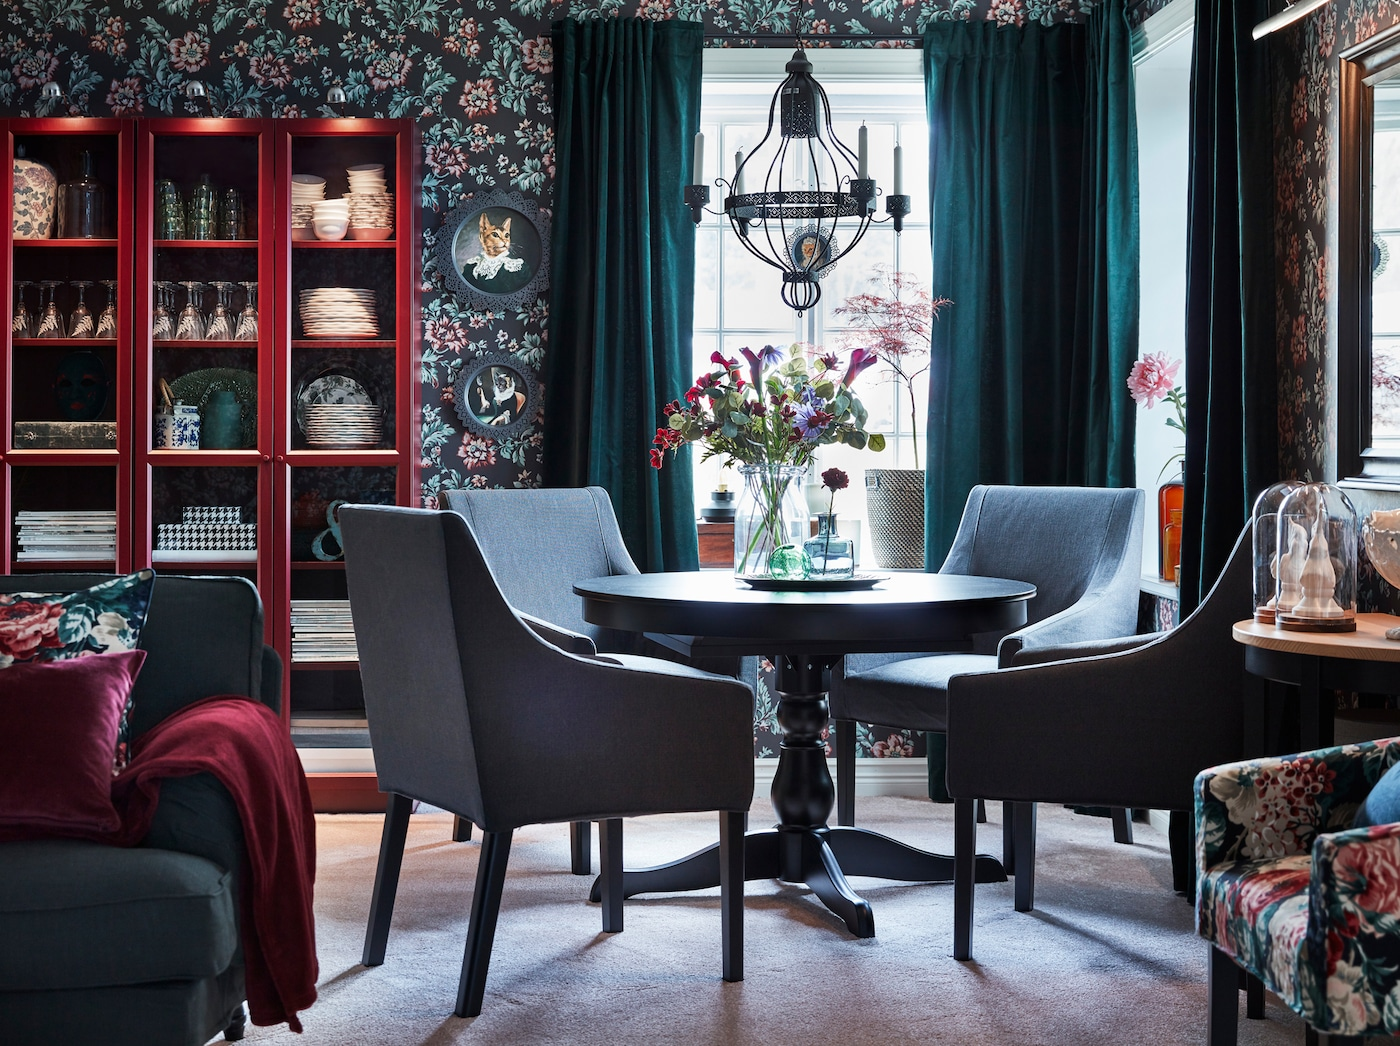 IKEA INGATORP black round extendable table and SAKARIAS dining chairs in both grey and floral patterns support the dining room's vintage floral wallpaper and dark green velvet curtains.